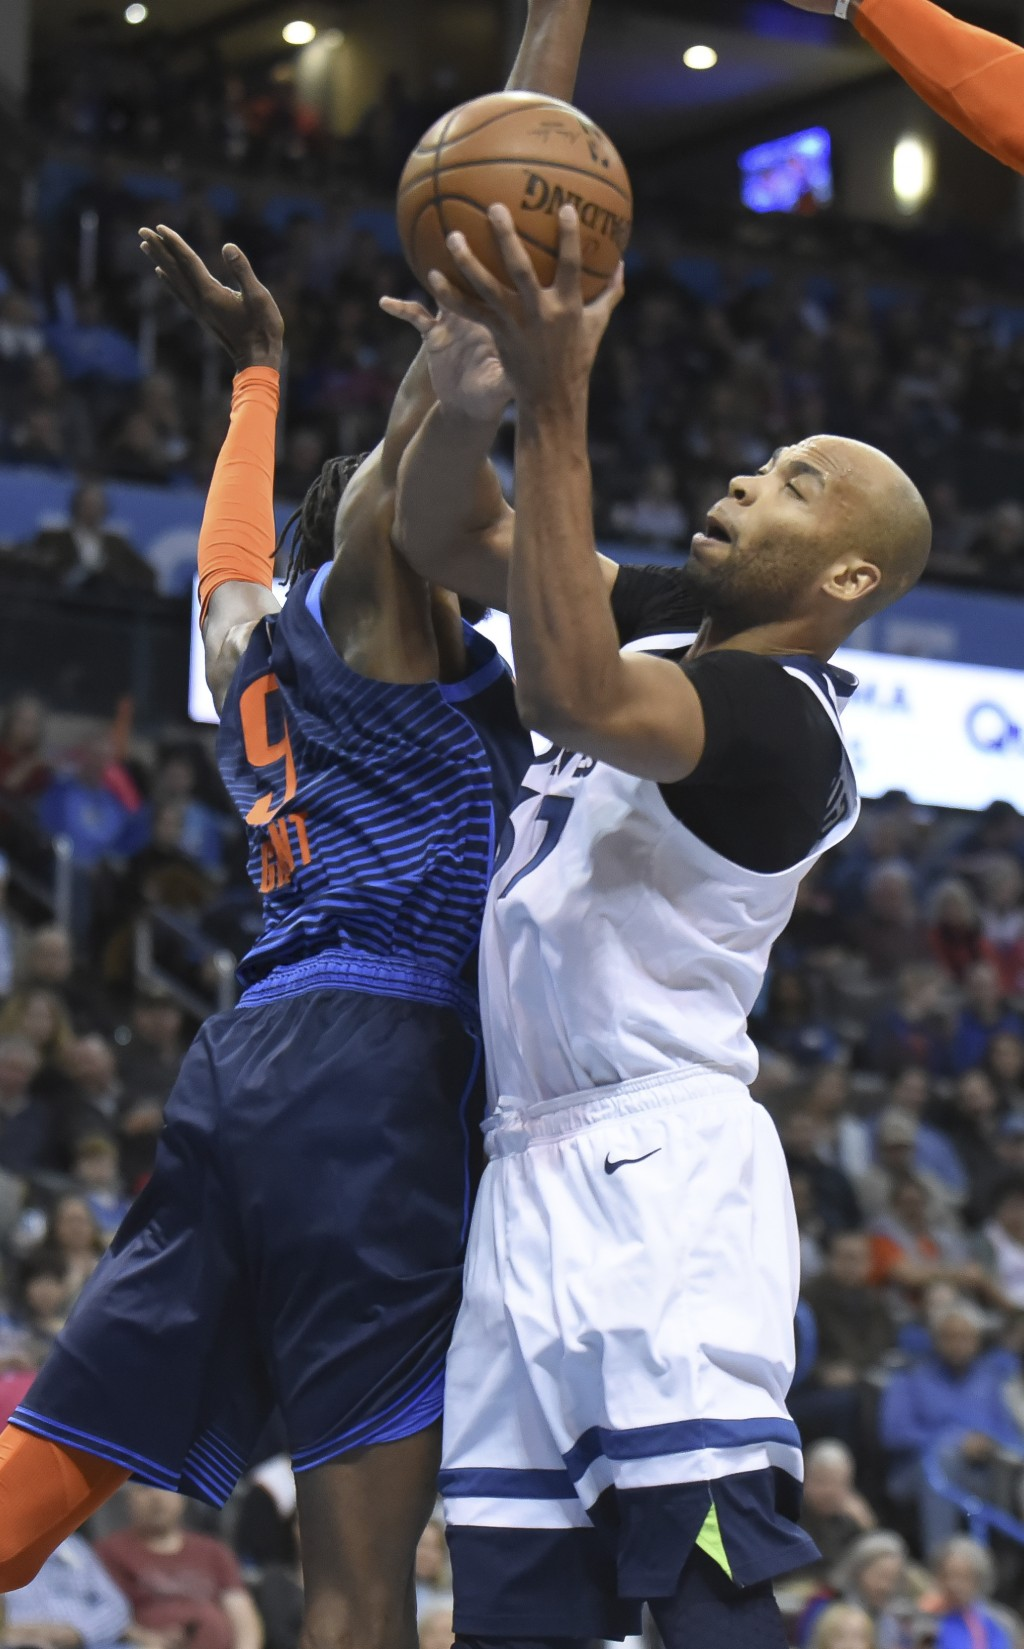 Minnesota Timberwolves forward Taj Gibson, right, goes up for a shot past Oklahoma City Thunder forward Jerami Grant, left, in the first half of an NB